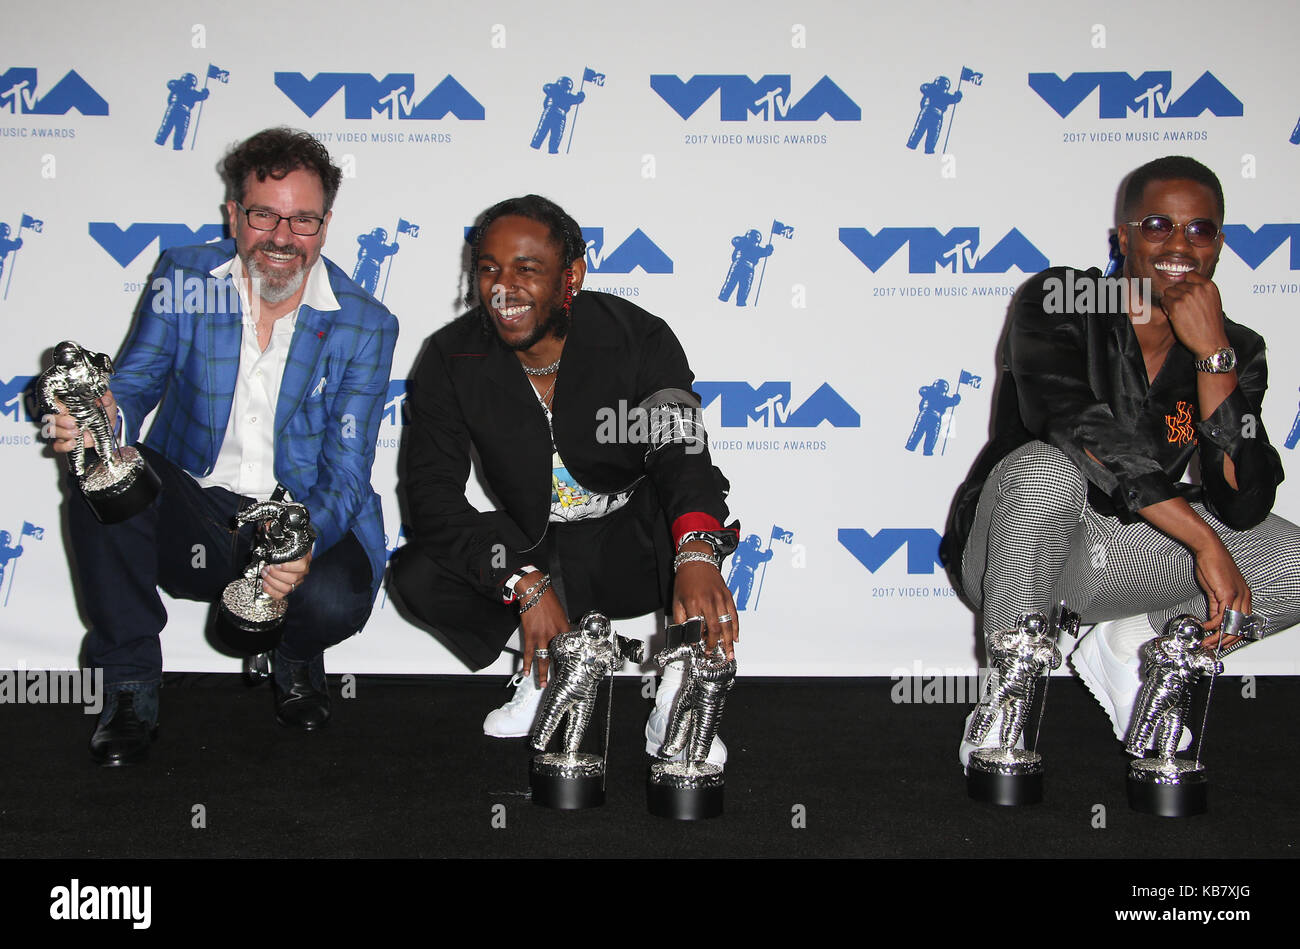 MTV Video Music Awards (VMA) 2017 Press Room, held at the Forum in